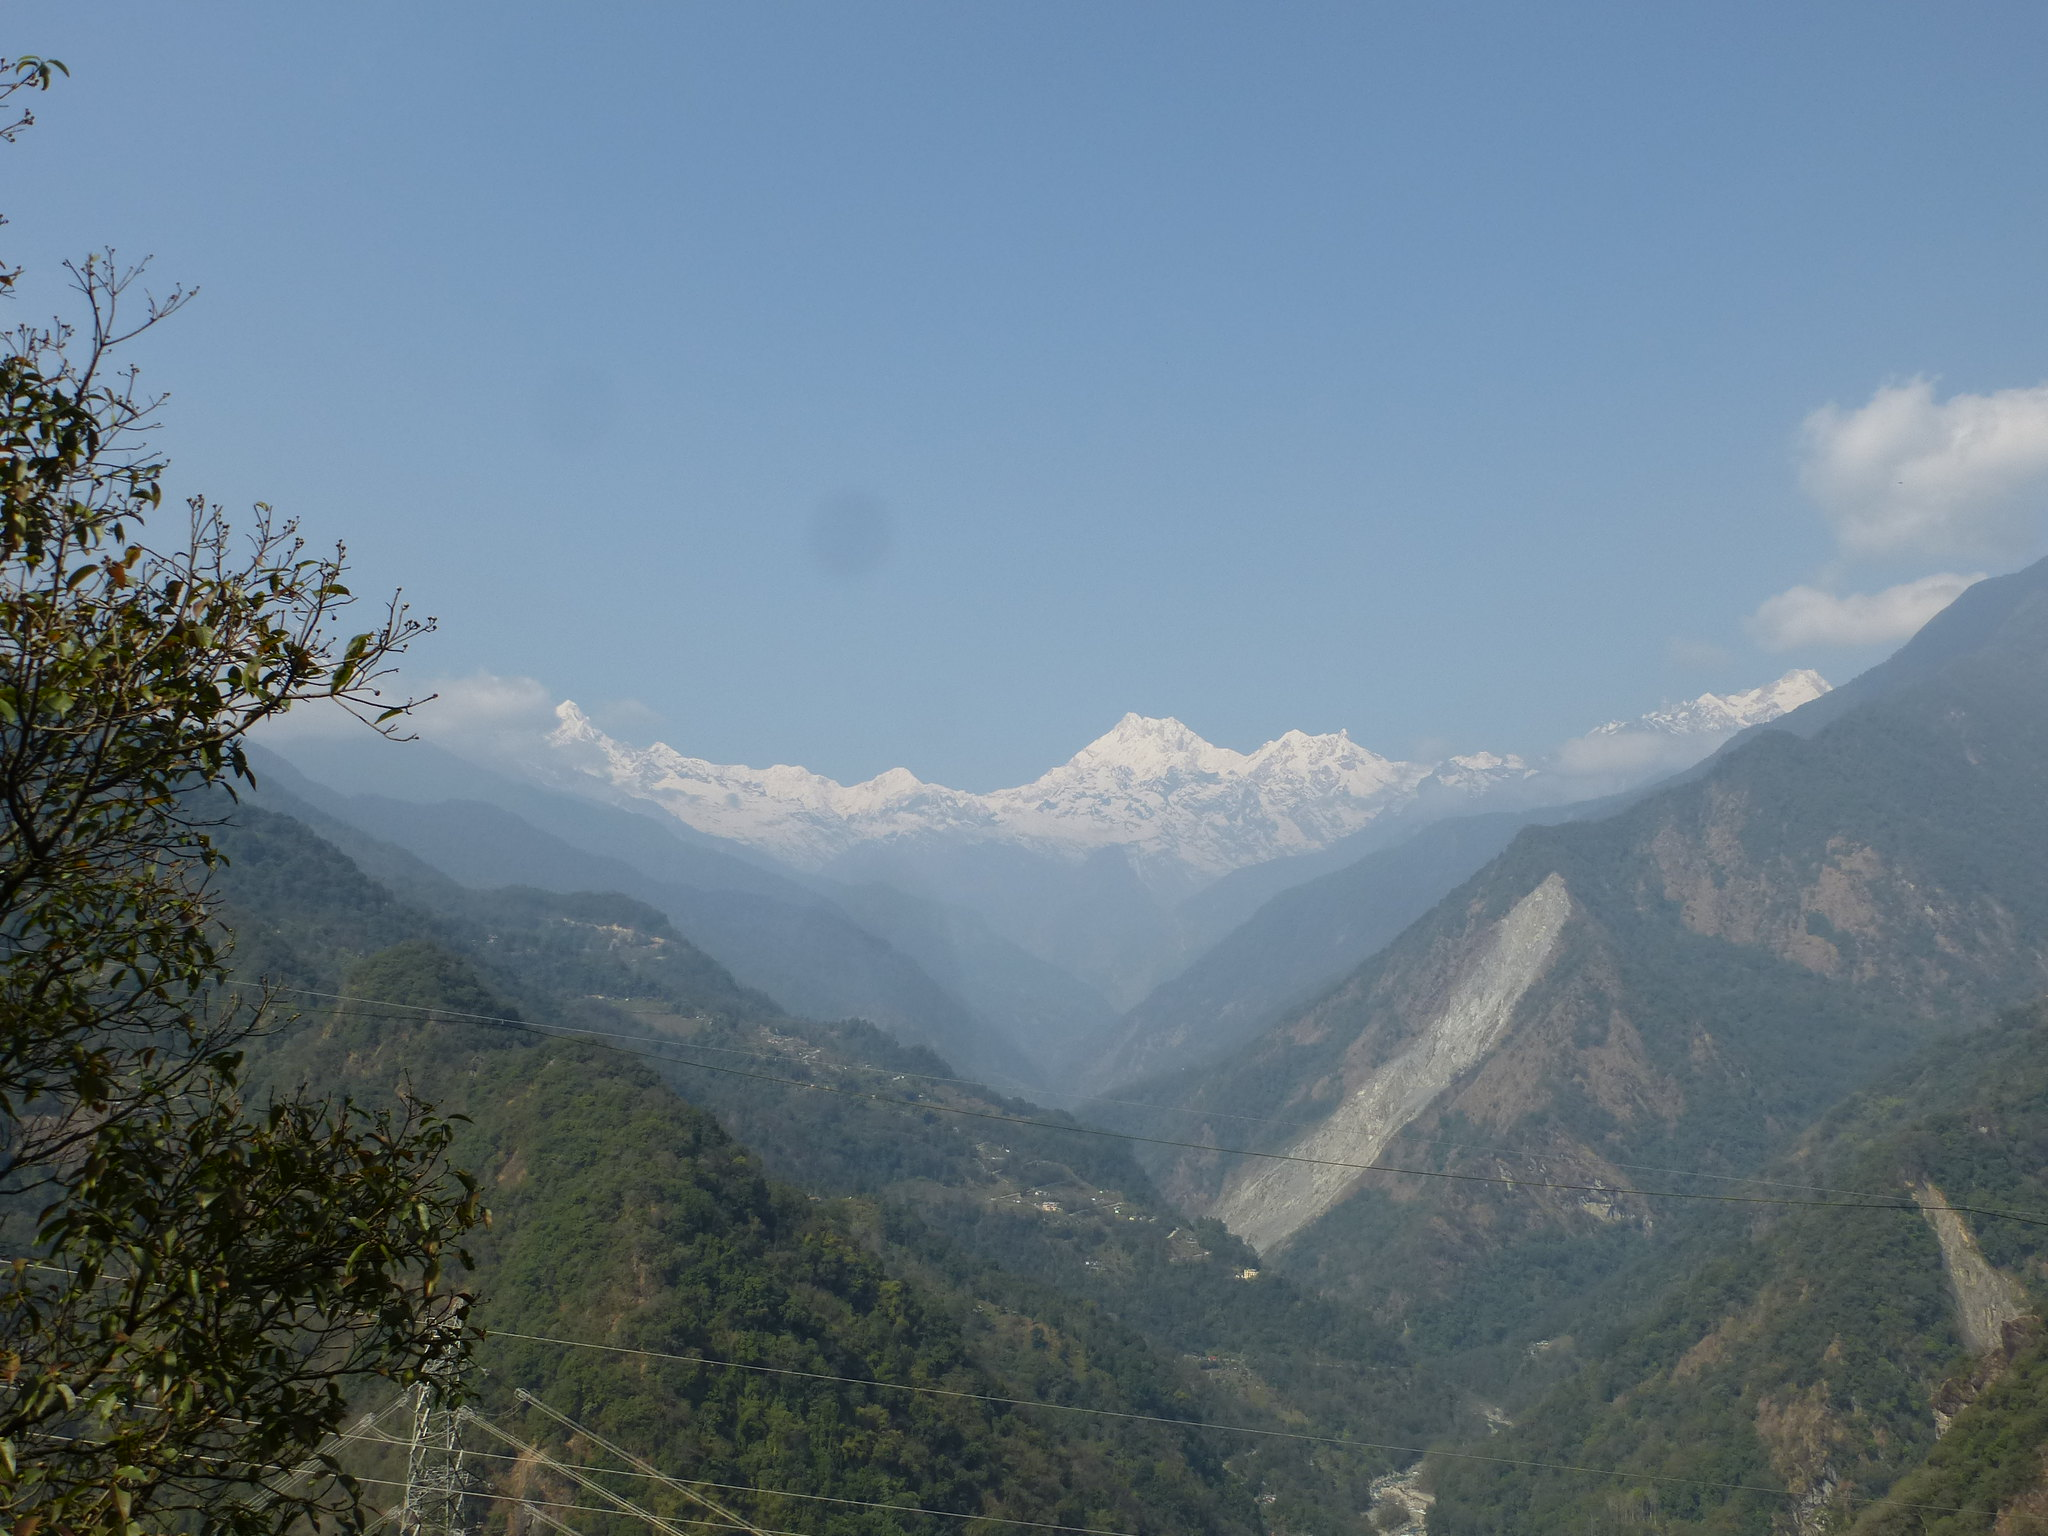 A view of Dzongu with the Mantam landslide visible on the right. The Rongyoung flows through the valley.